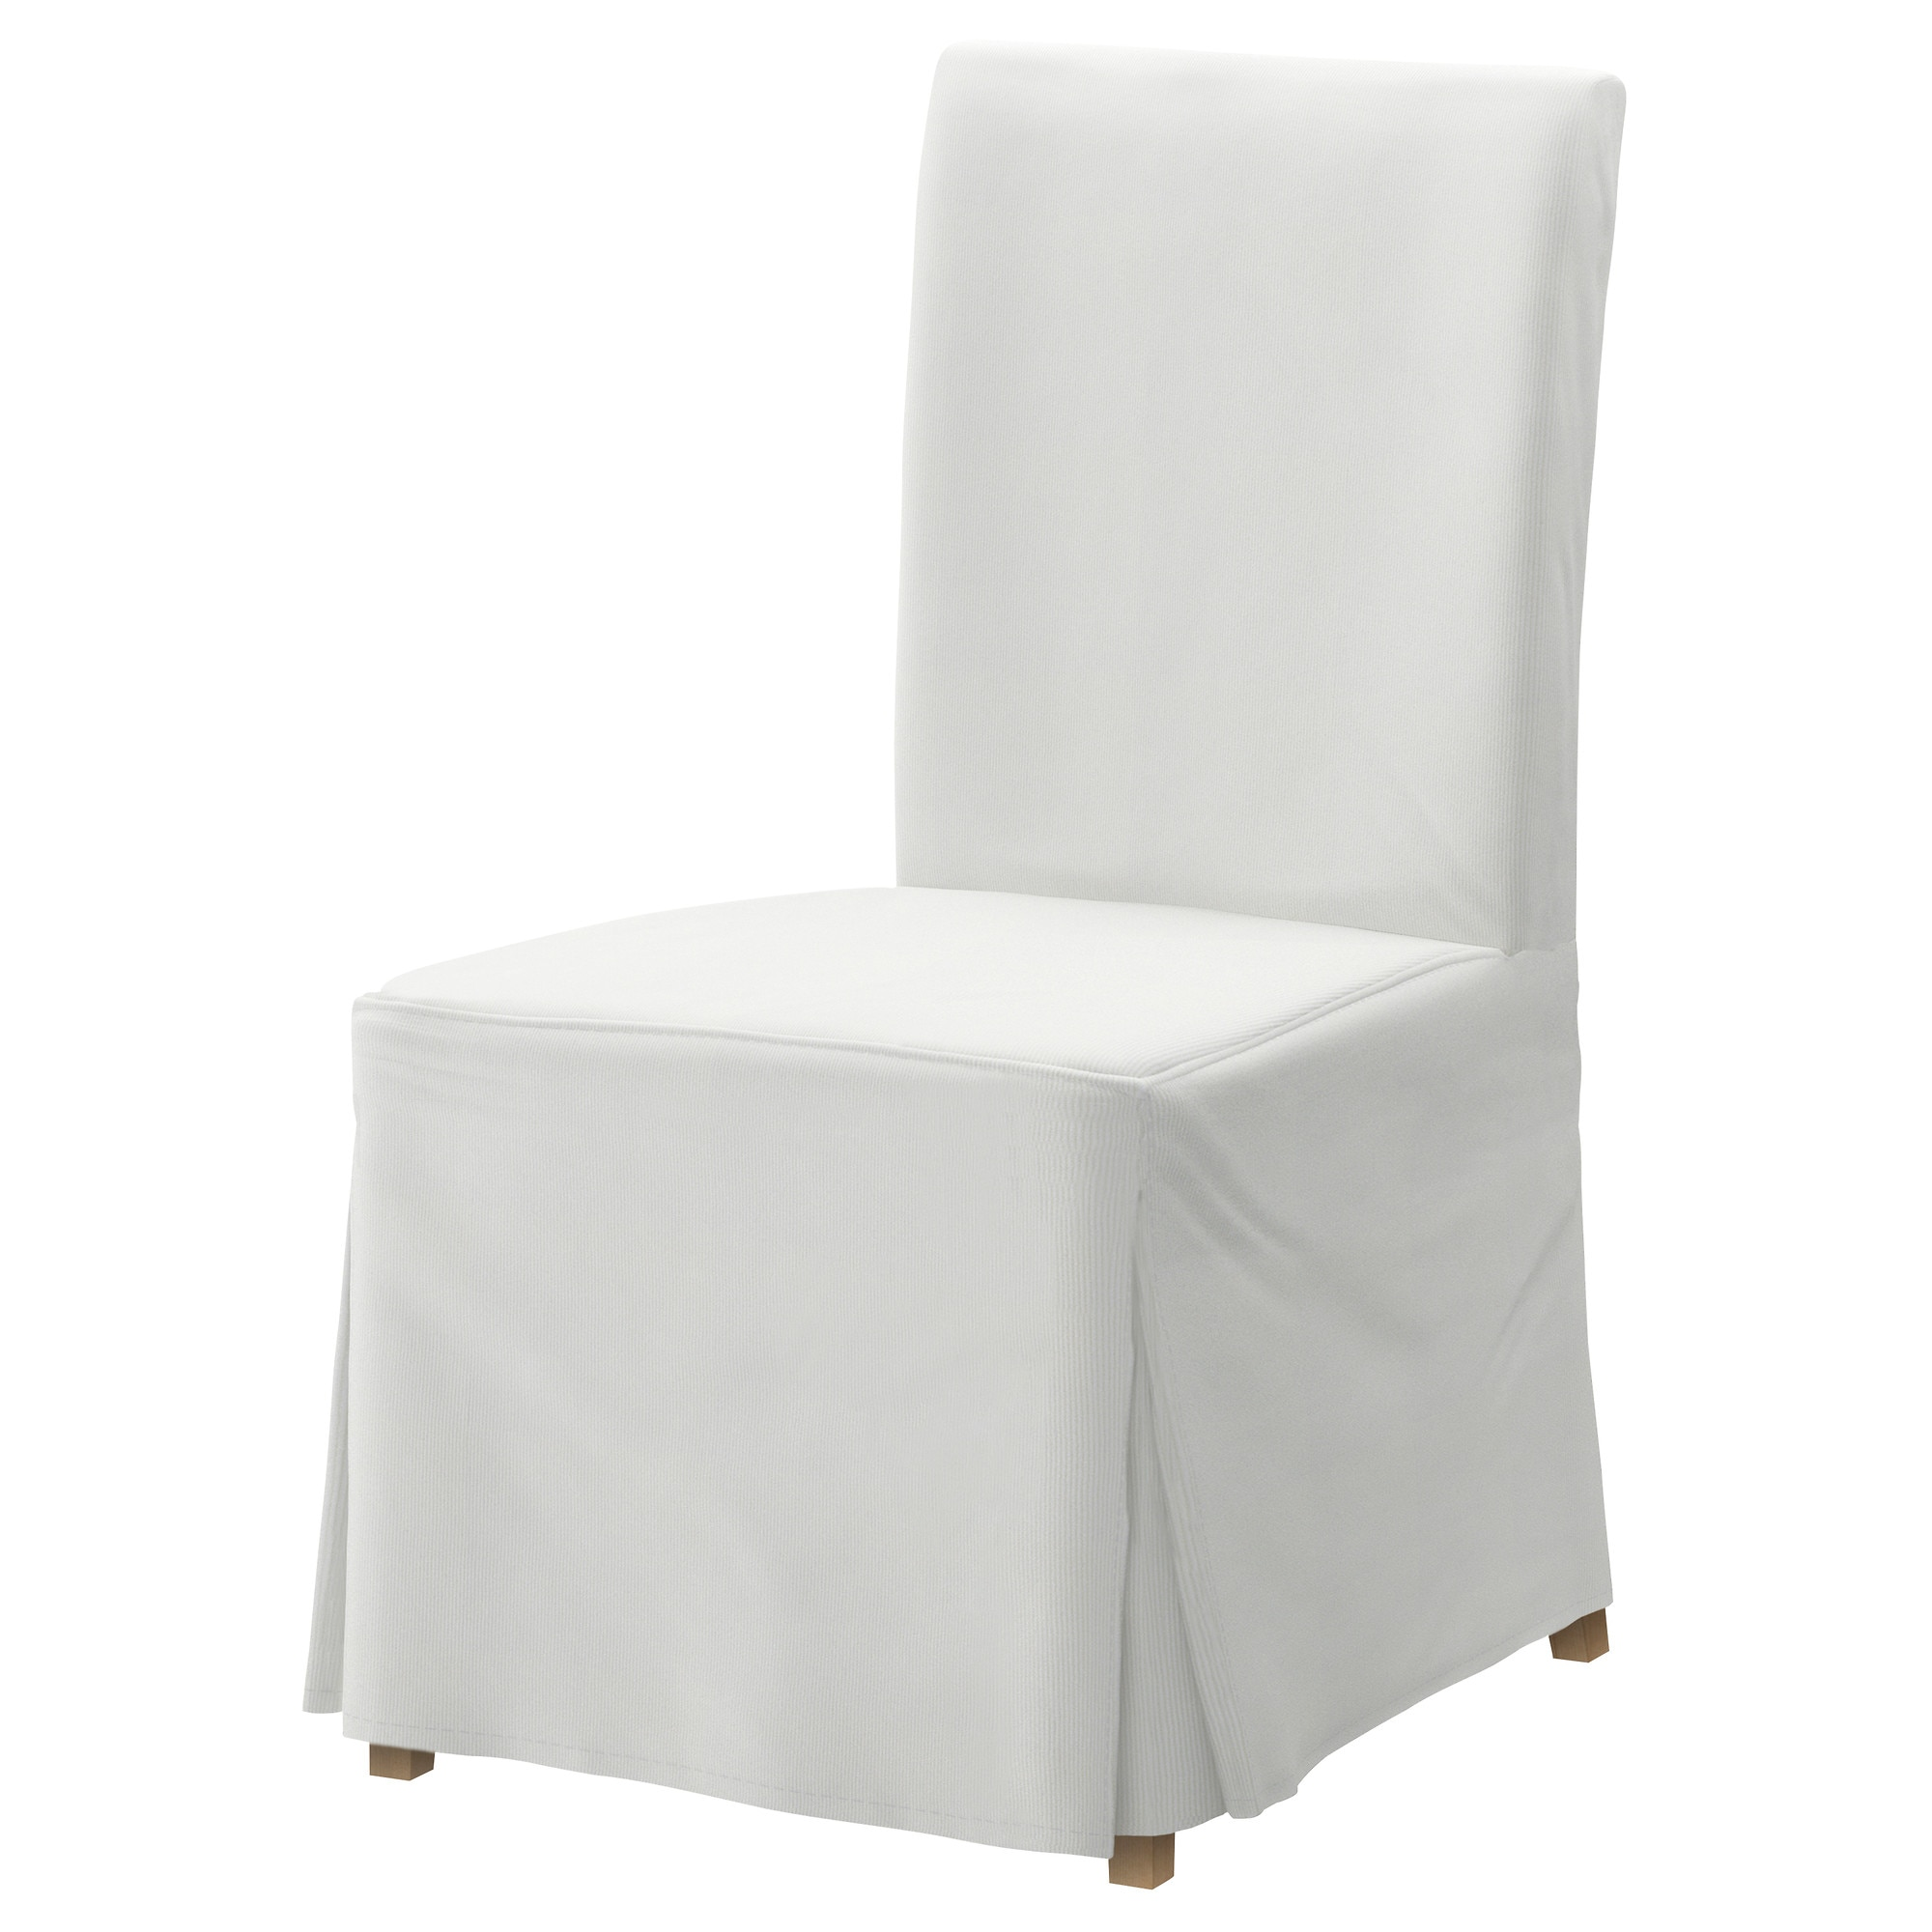 Black chair and white chair - Henriksdal Chair With Long Cover Birch Blekinge White Tested For 243 Lb Width